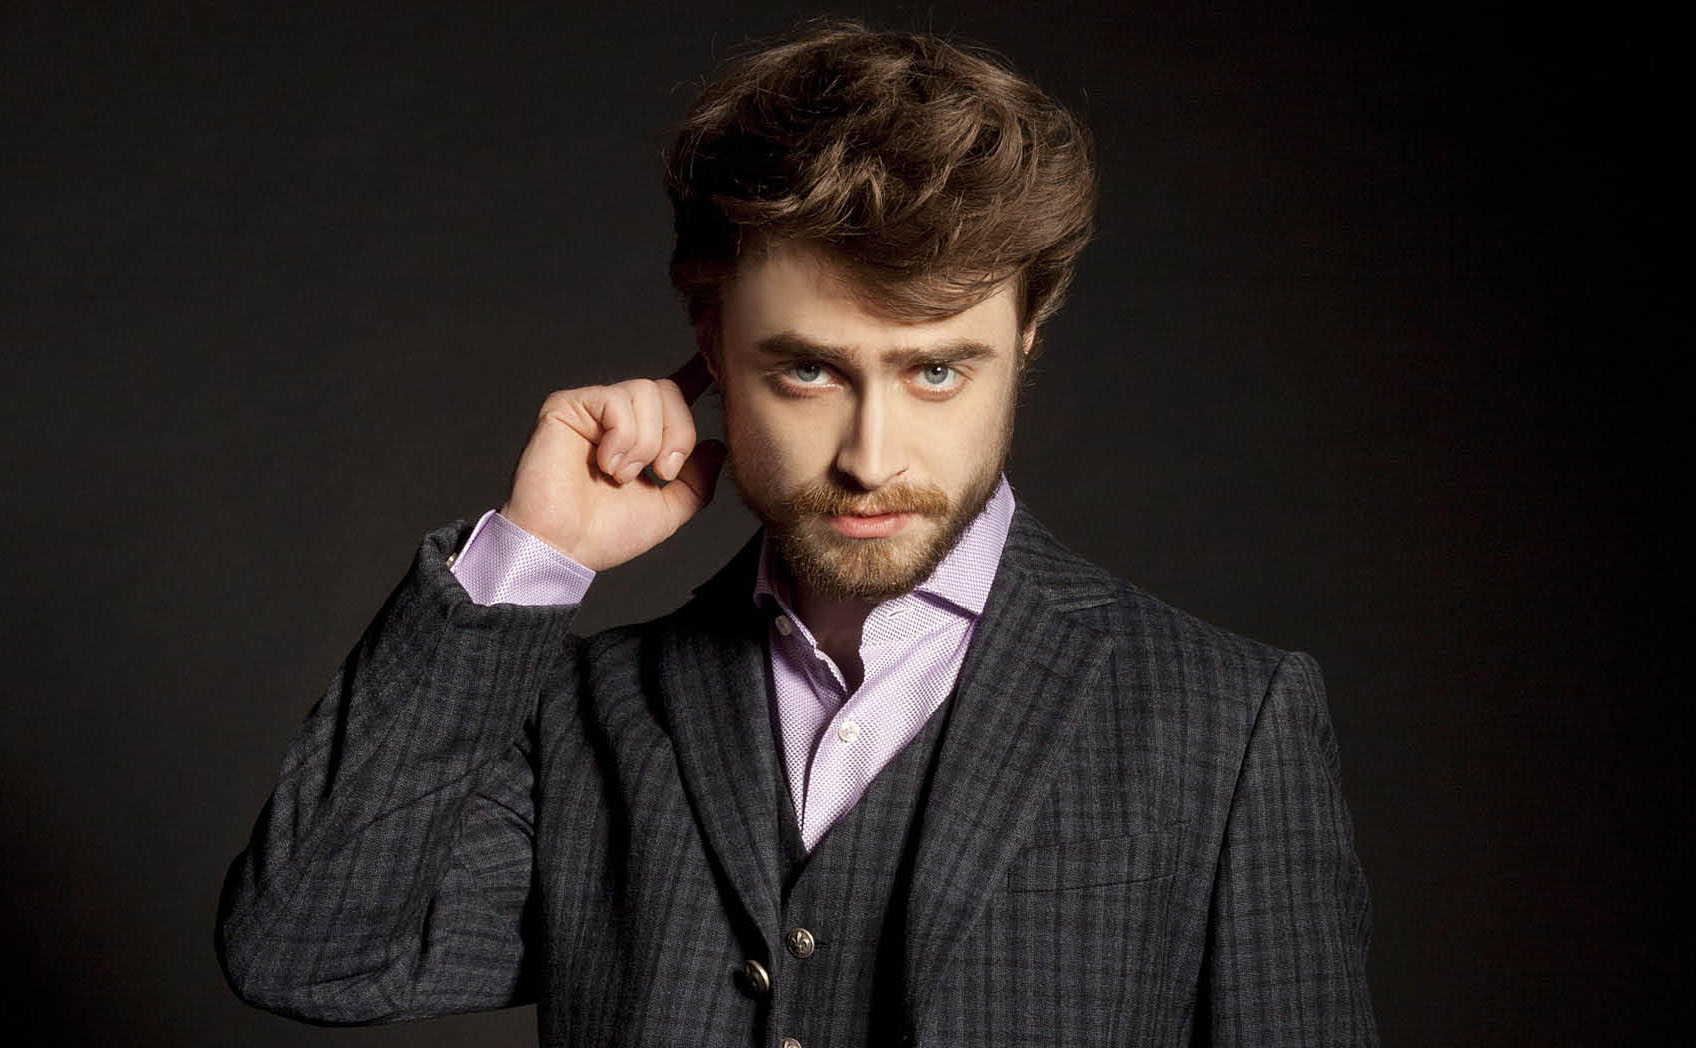 Image result for daniel radcliffe looks like jude law